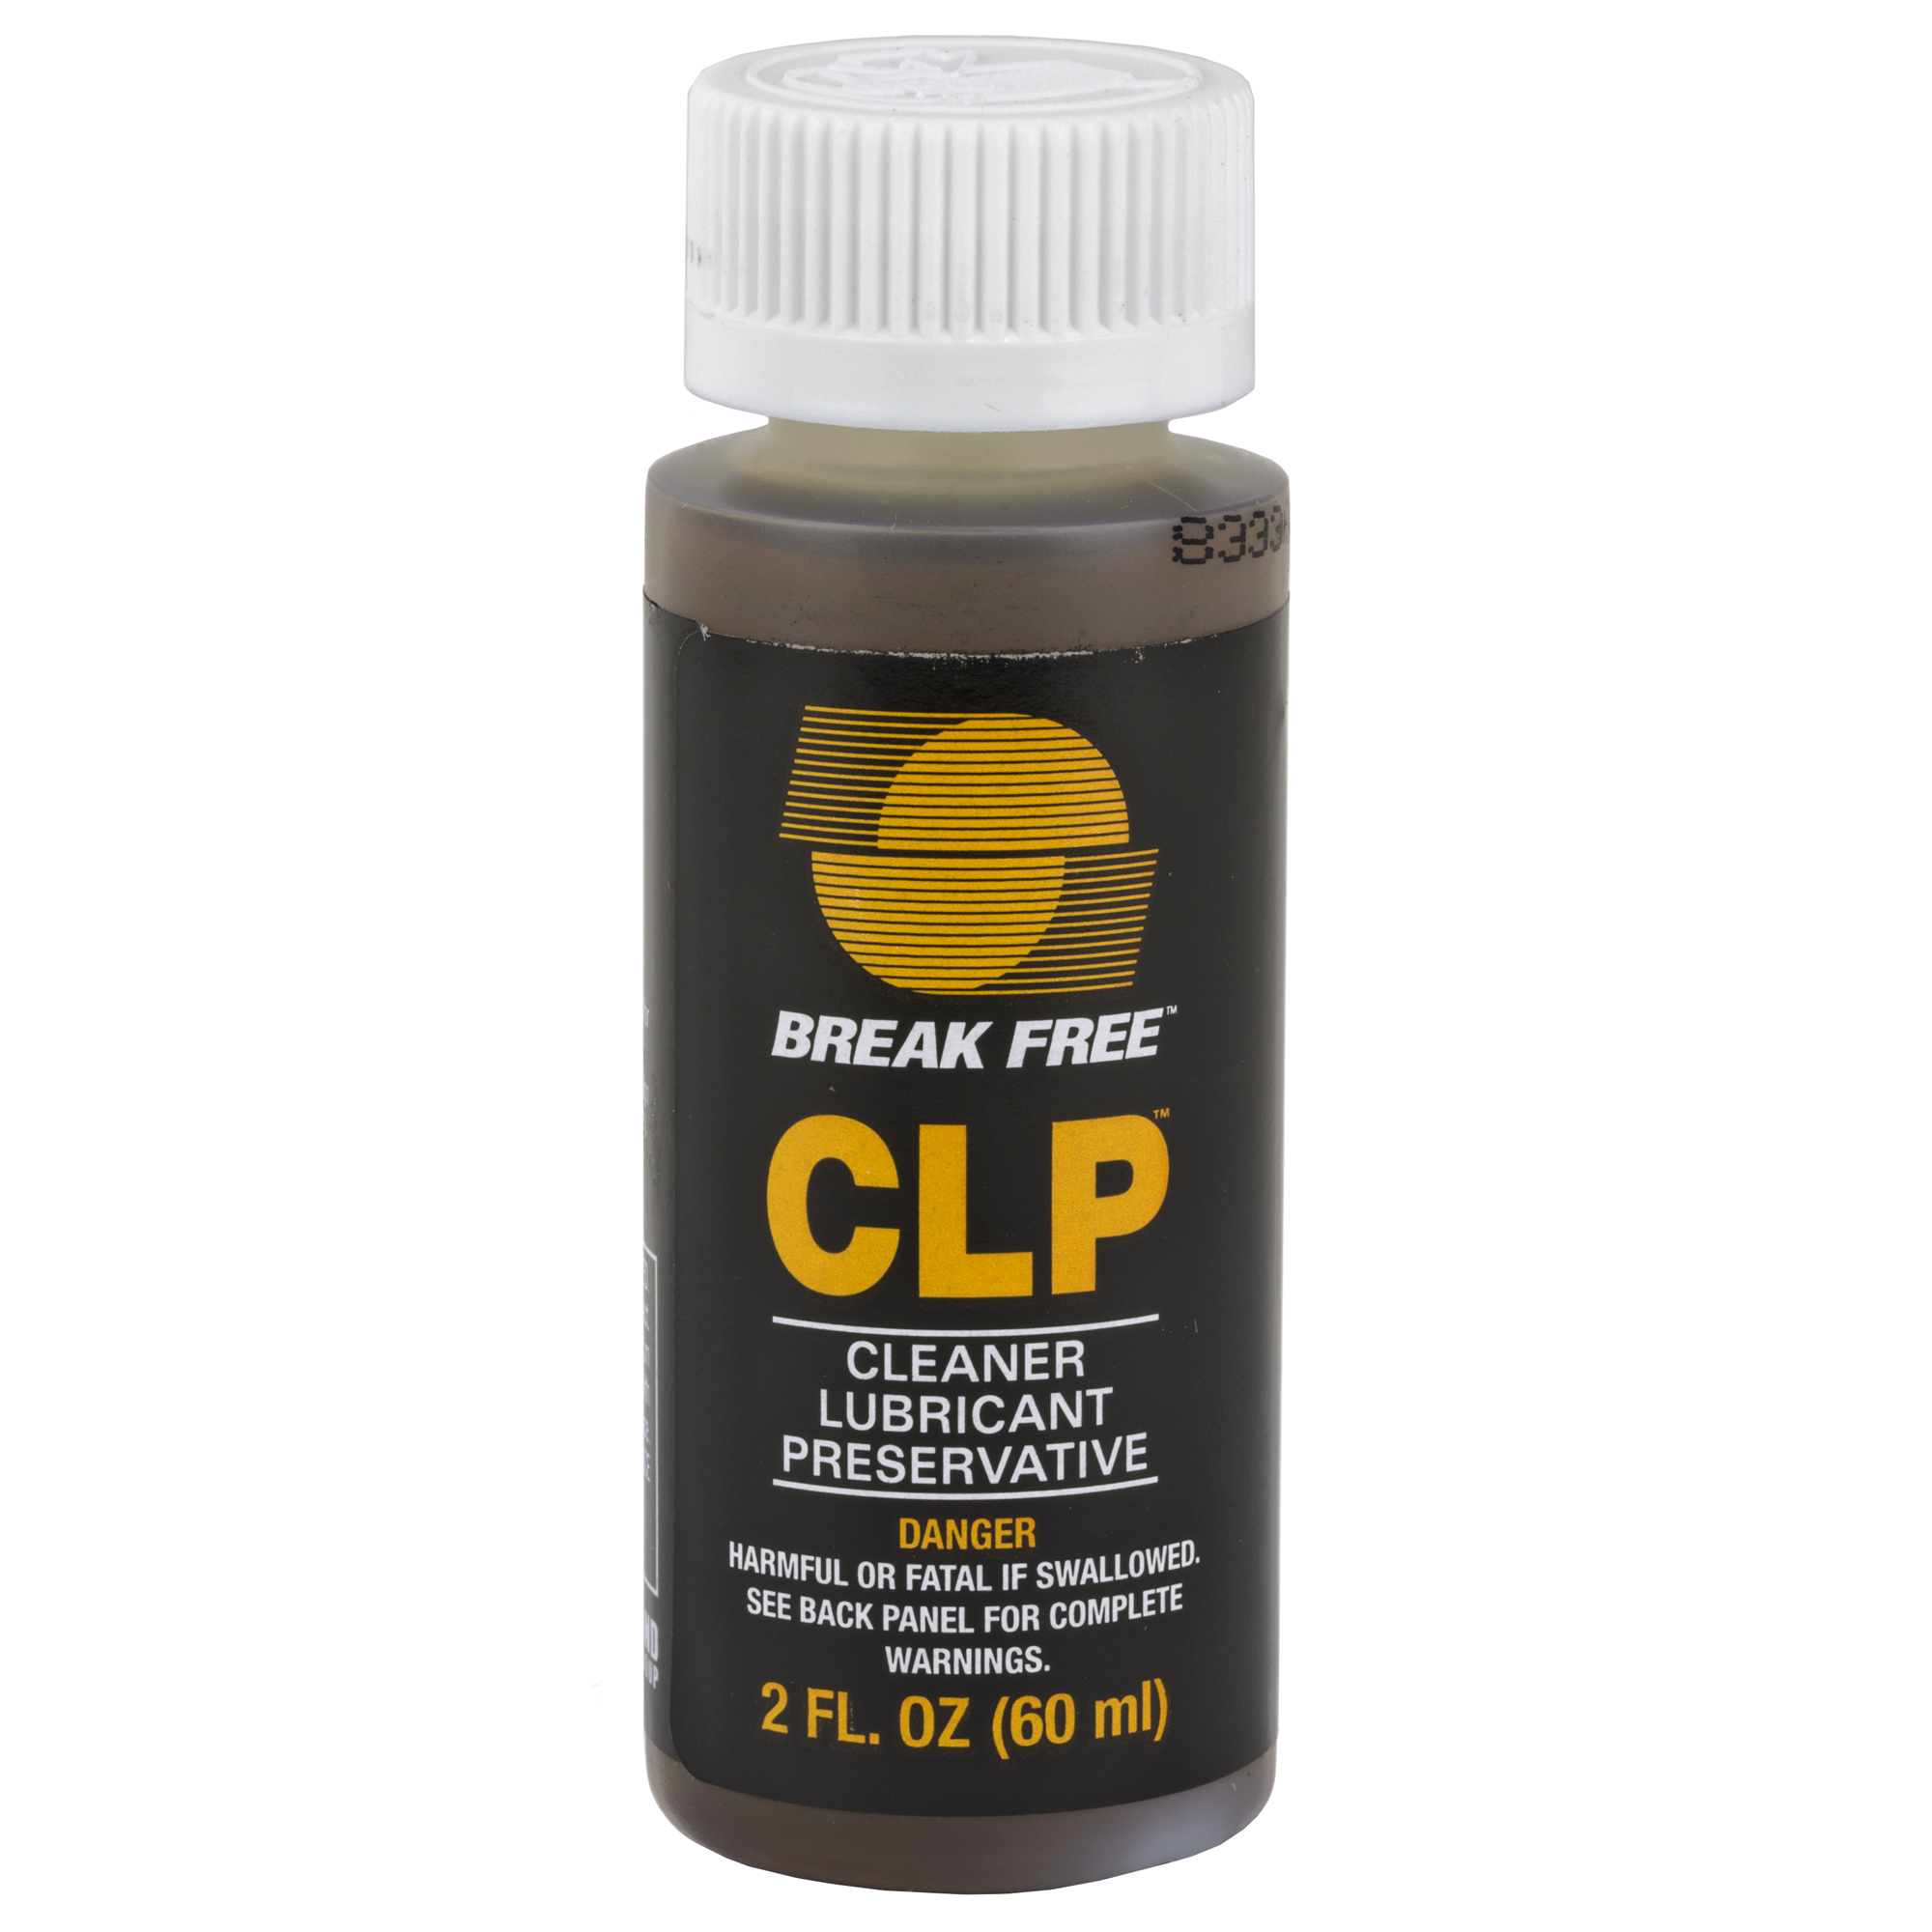 """Break Free CLP is the gold standard solution requiring only one step to clean"""" lubricate and protect your firearm. More than a superior lubricant"""" CLP cleans firing residue and other contaminates from the bore"""" moving parts"""" and exterior of firearms while simultaneously reducing friction and protecting from corrosion. The CLP formula does not deteriorate under high temperatures or extreme pressure. Manufactured from the highest-quality polymerized synthetic oils"""" plus special"""" friction-reducing"""" anti-wear additives"""" Break Free CLP is the ideal all-in-one formula to service and preserve your firearm."""